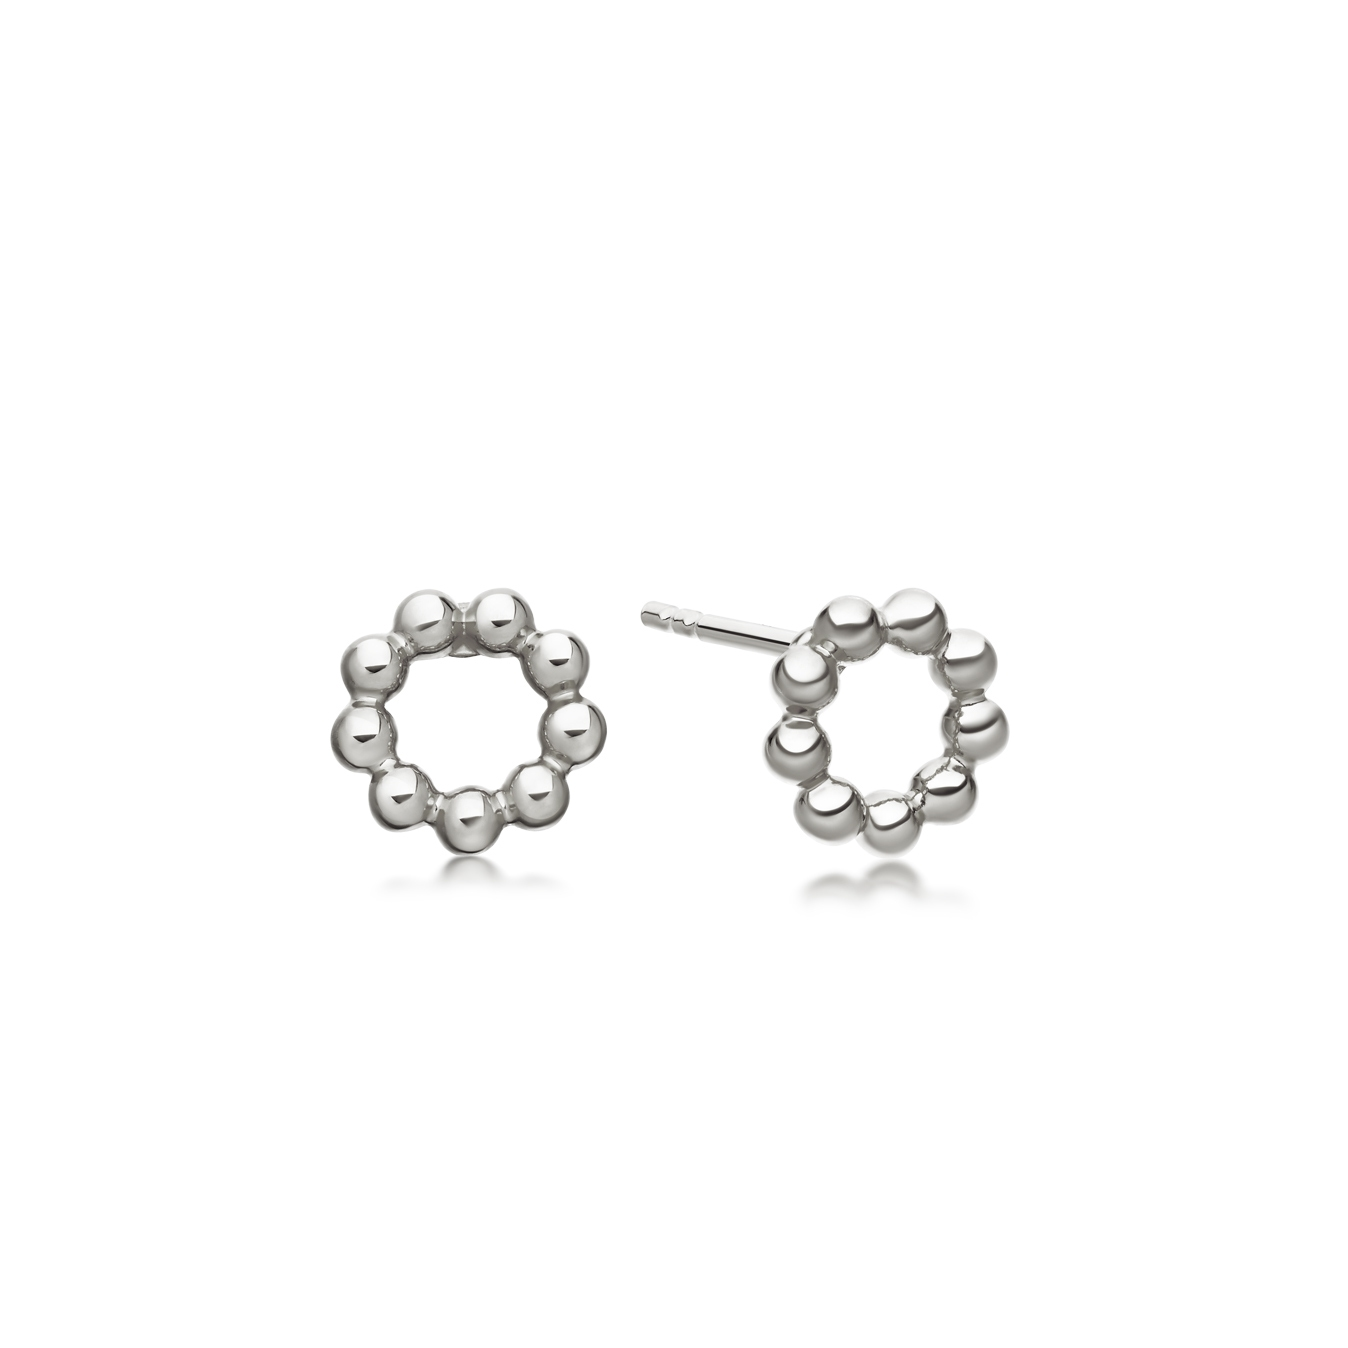 Beaded Stilla Stud Earrings